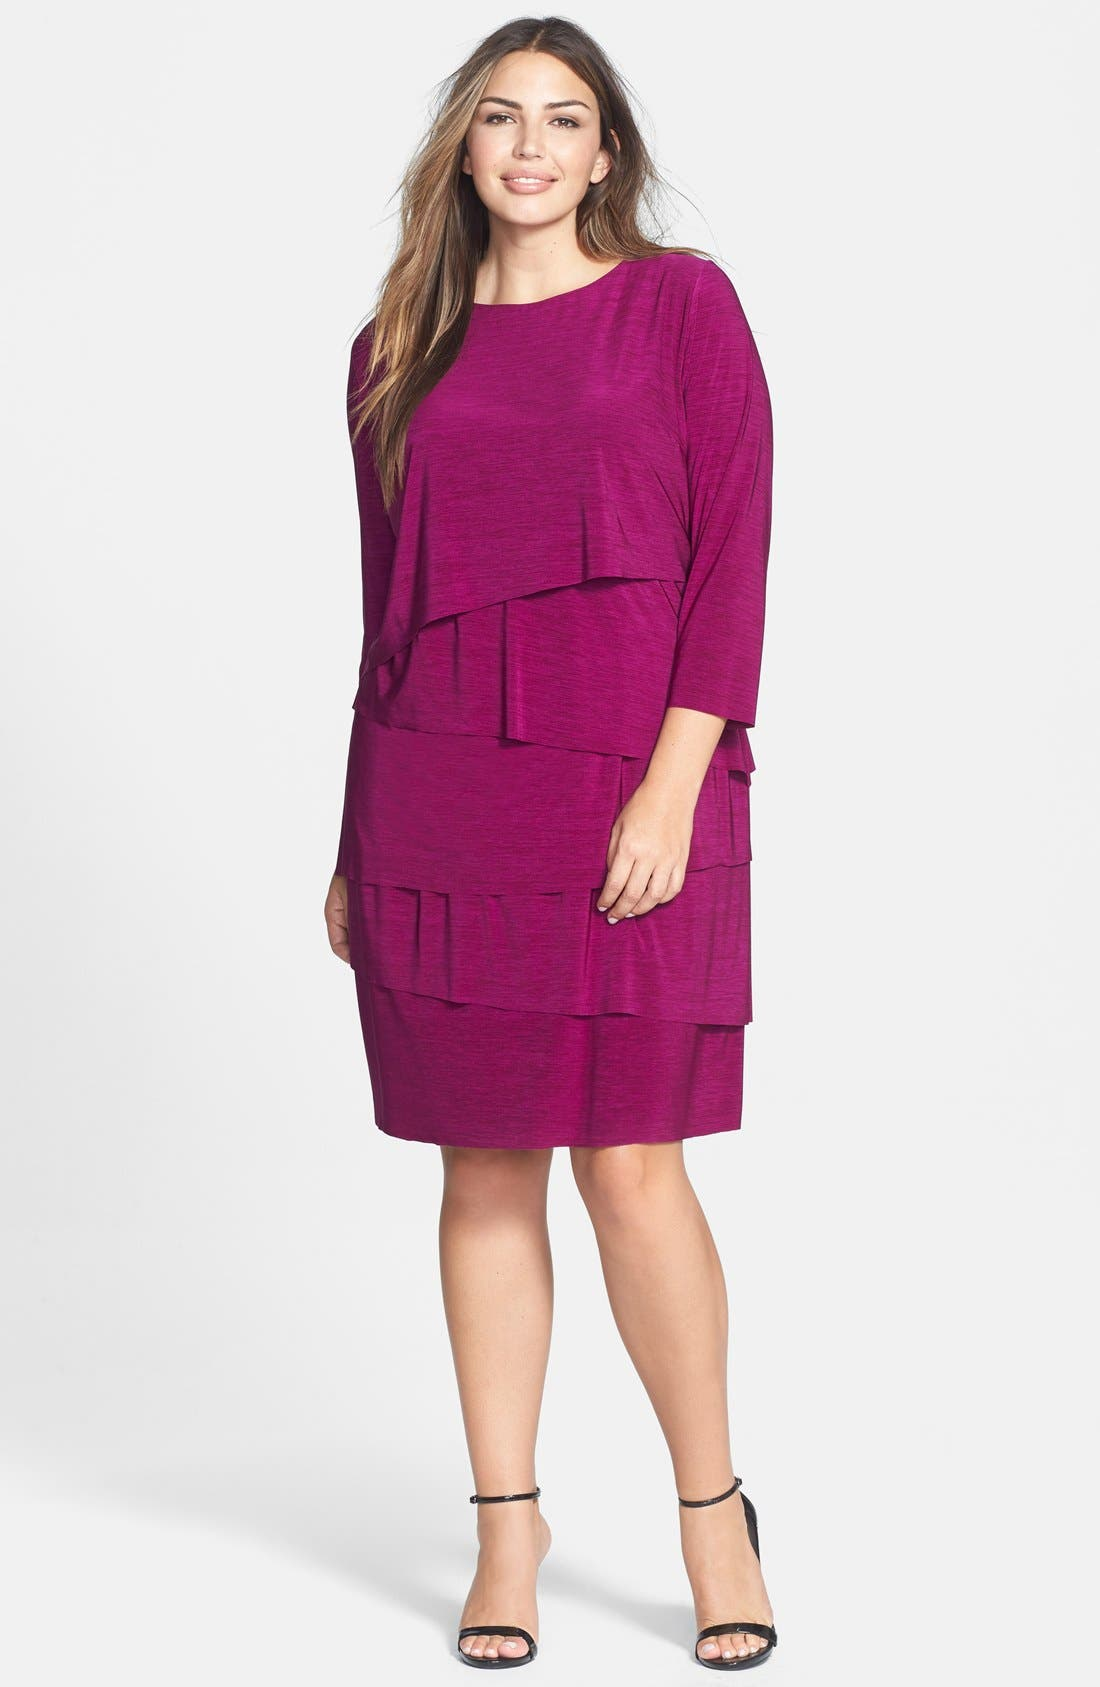 Alternate Image 1 Selected - Tahari by ASL Tiered Slub Jersey Shift Dress (Plus Size)